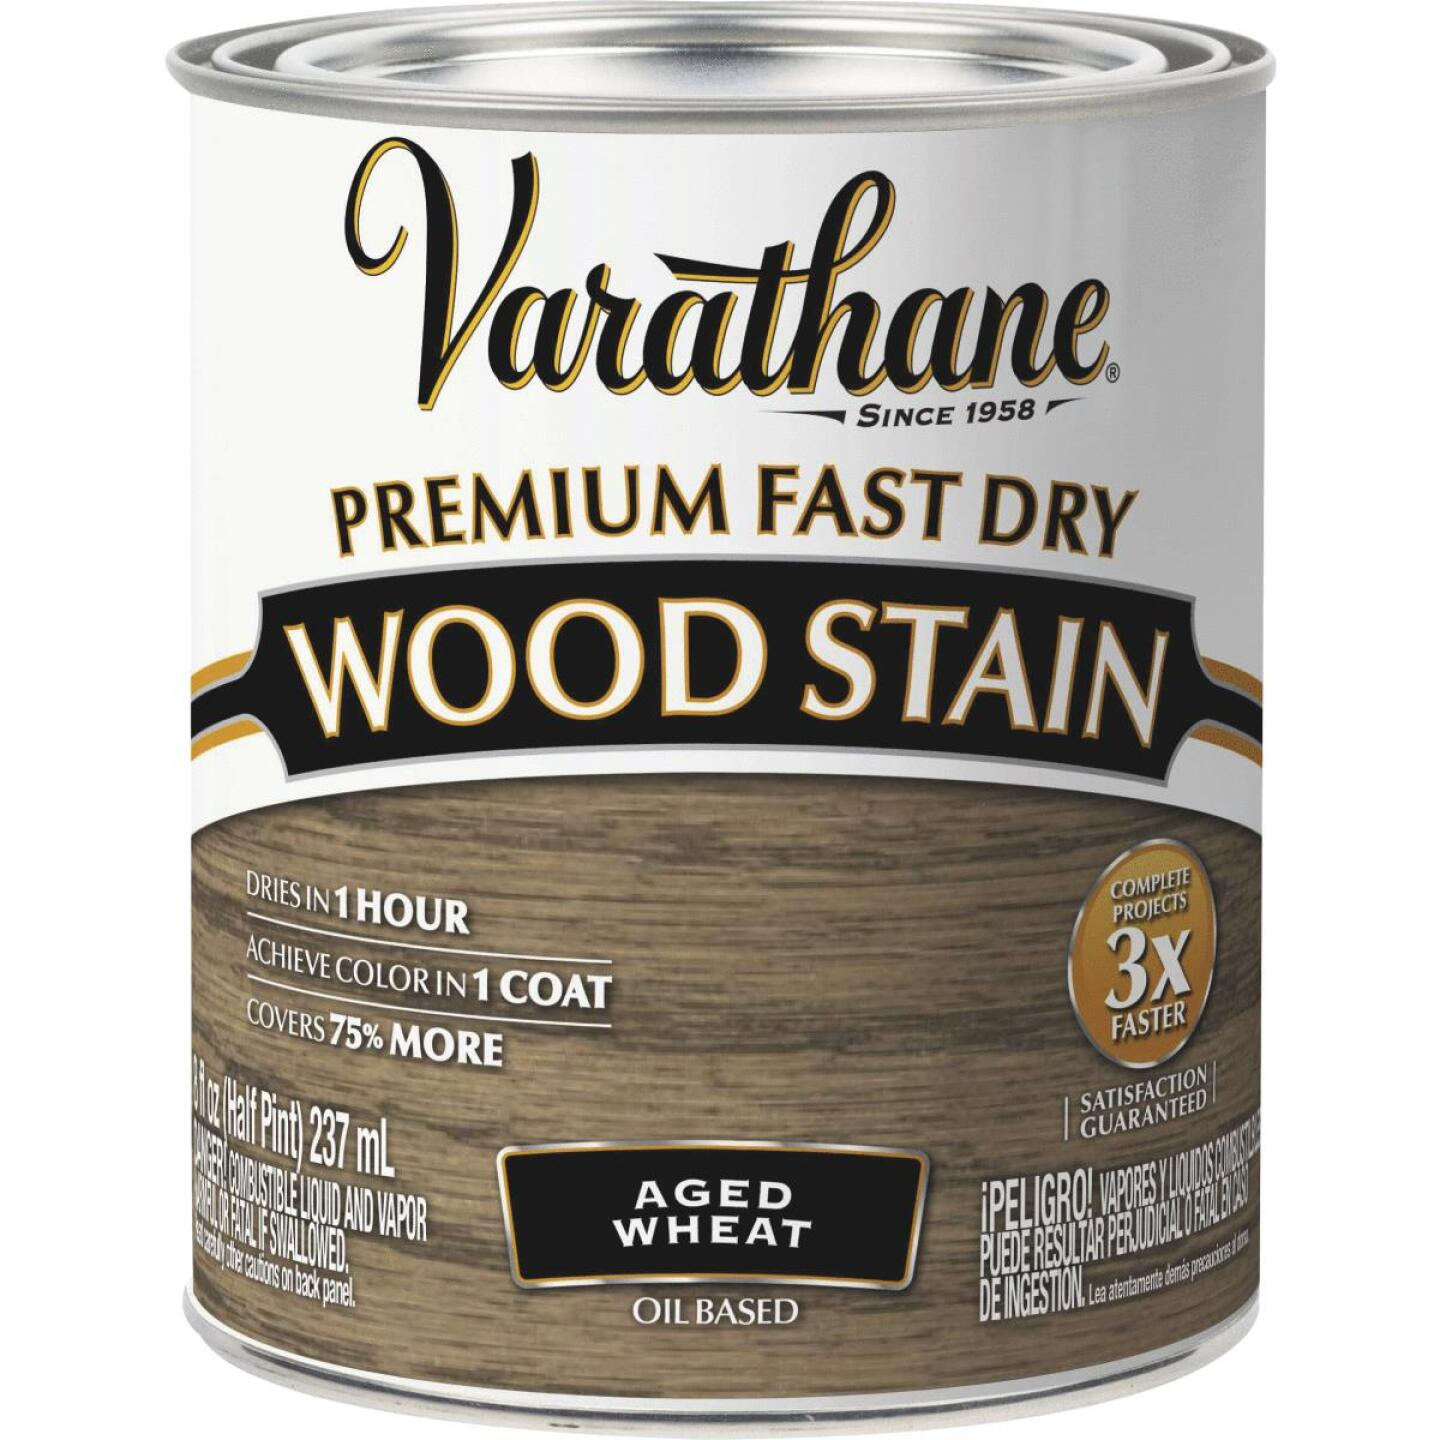 Varathane Fast Dry Aged Wheat Urethane Modified Alkyd Interior Wood Stain, 1/2 Pt. Image 1